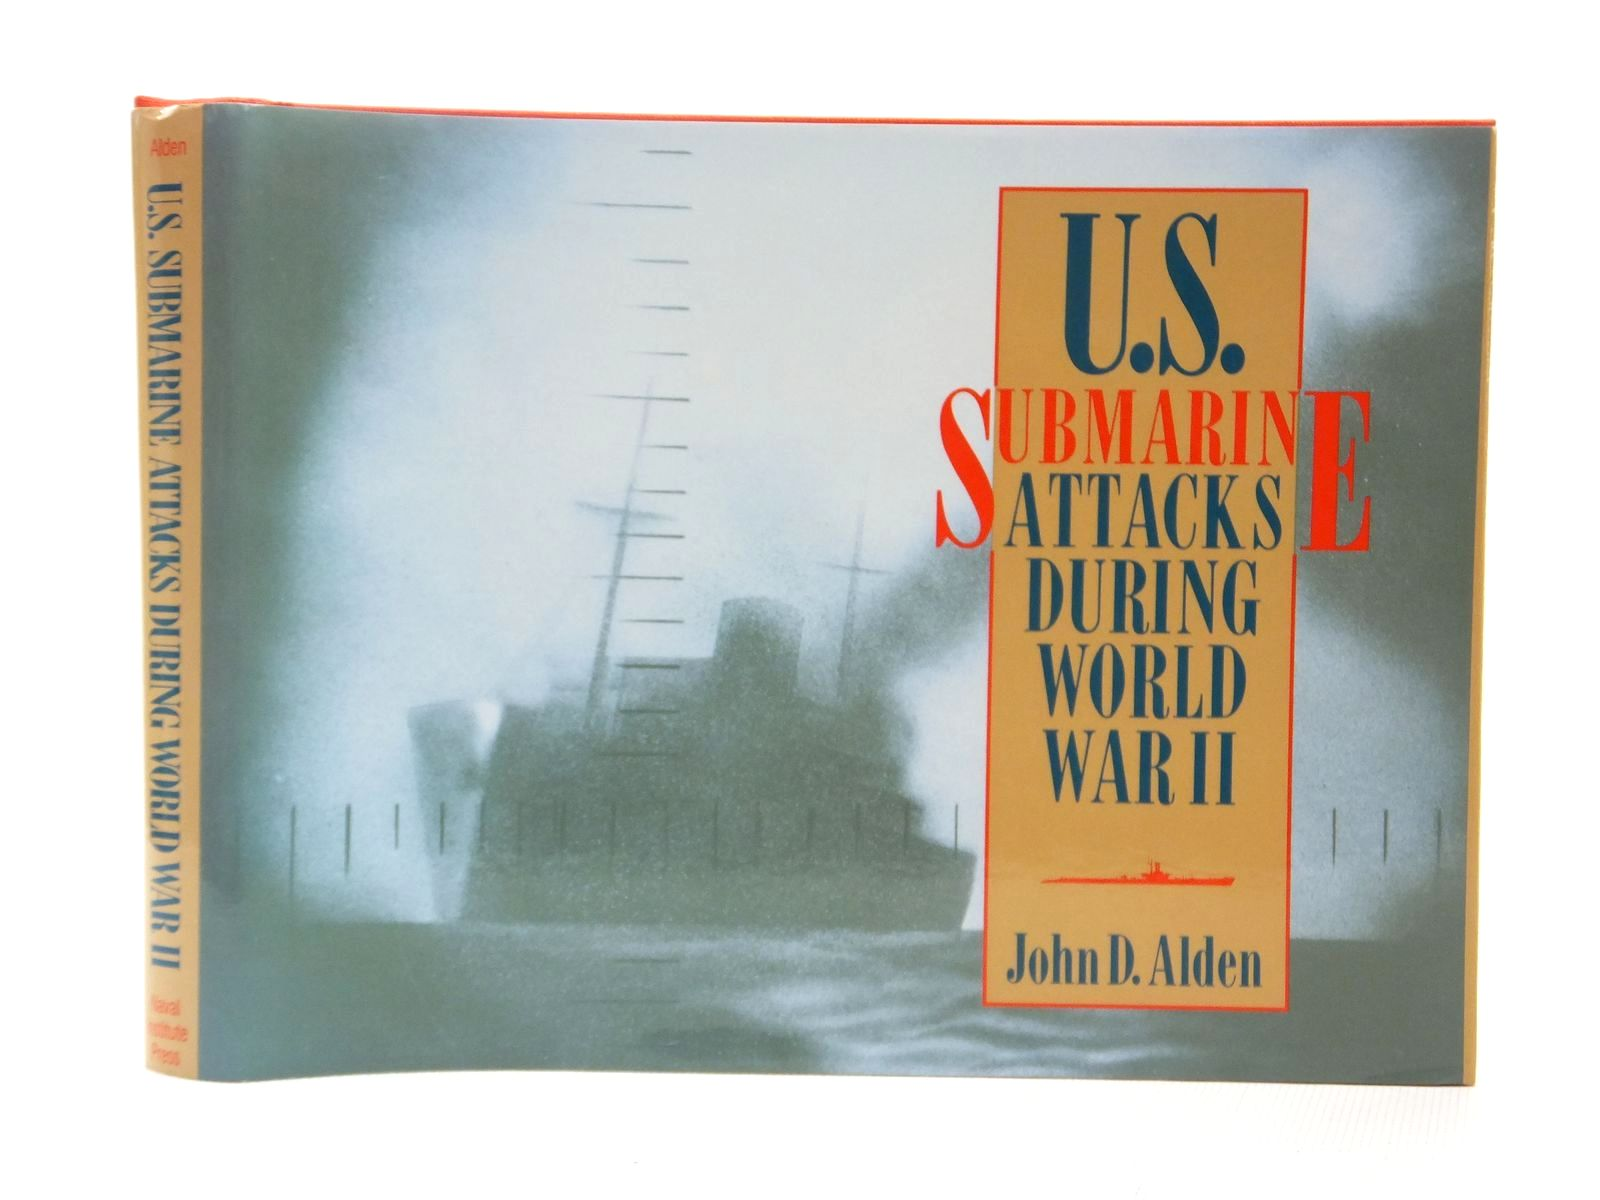 Photo of U.S. SUBMARINE ATTACKS DURING WORLD WAR II written by Alden, John D. published by Naval Institute Press (STOCK CODE: 1609567)  for sale by Stella & Rose's Books